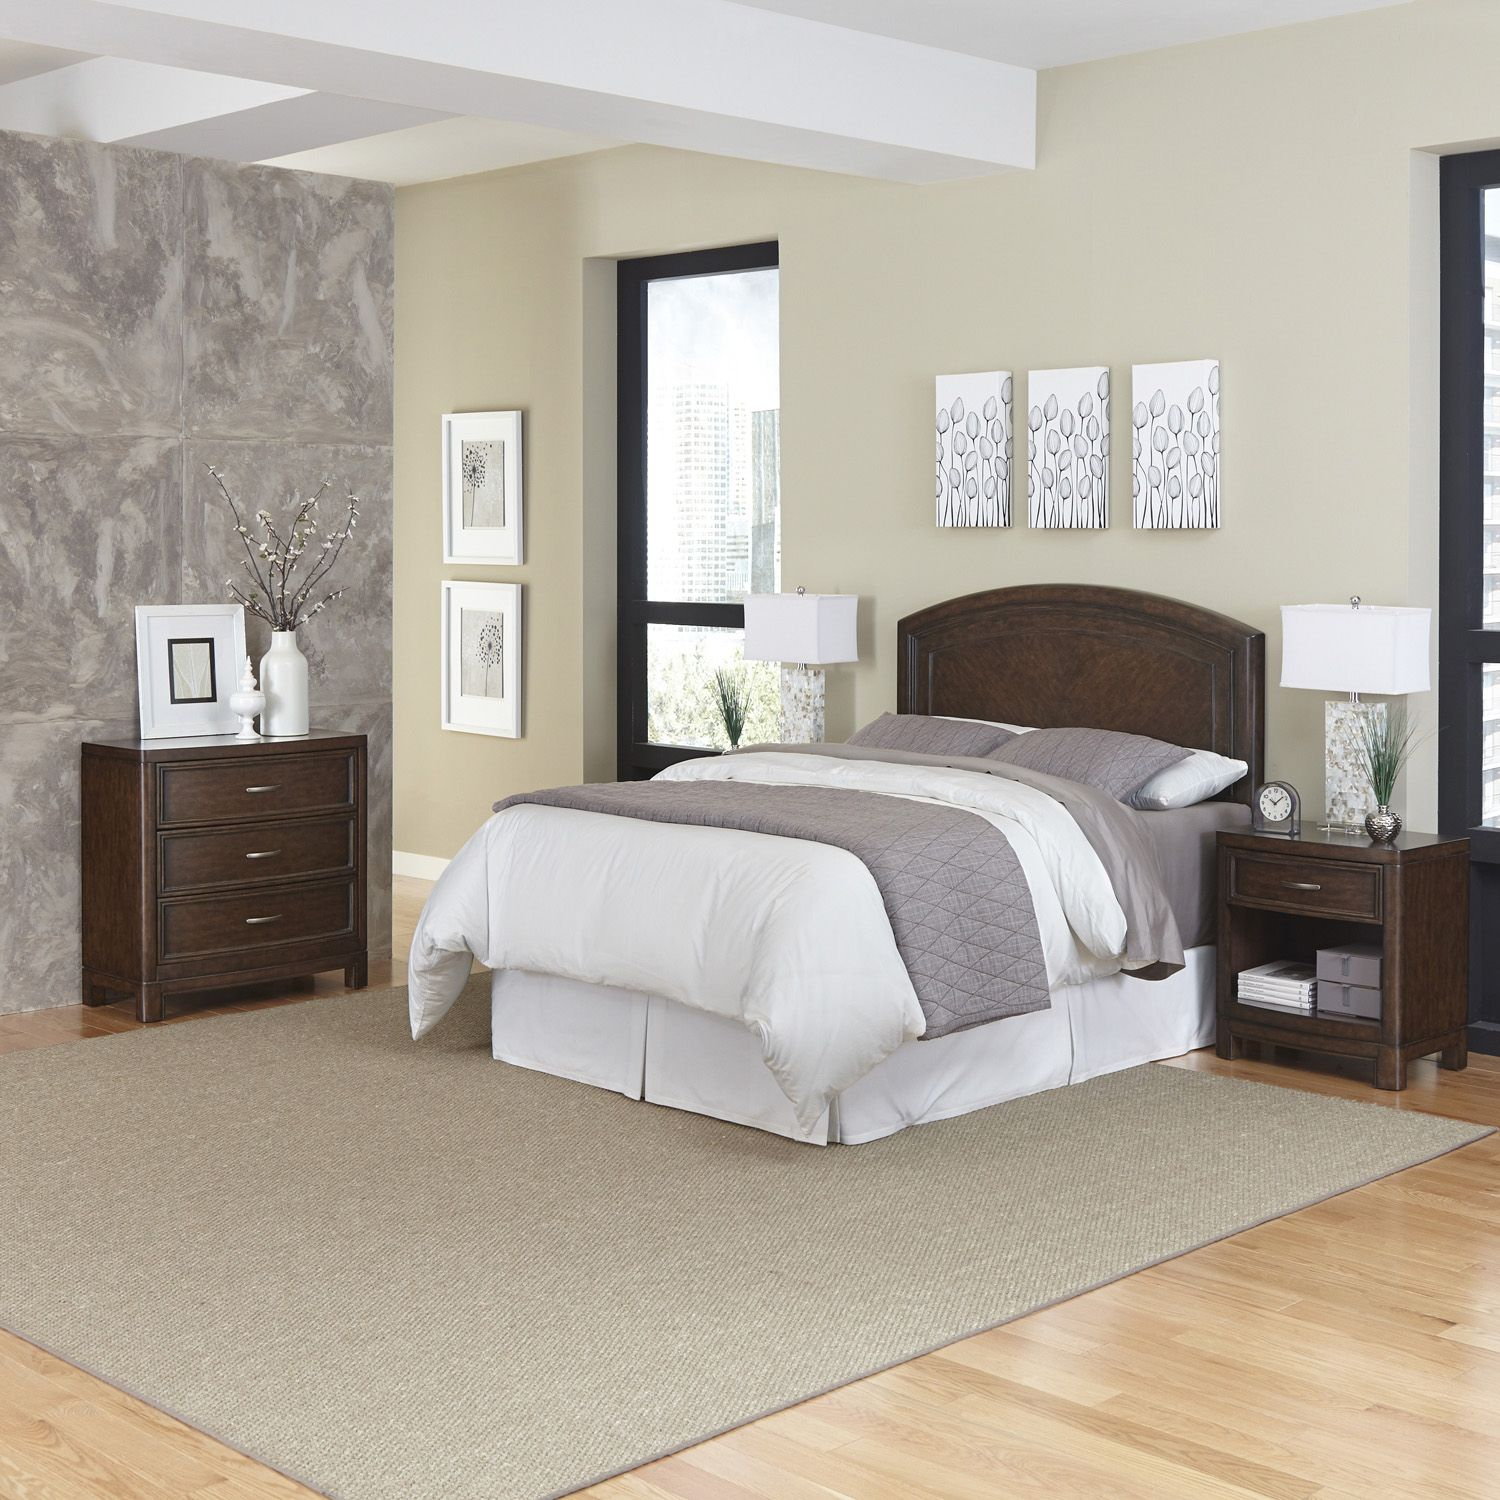 Stunning Home Styles Crescent Hill piece Bedroom Set